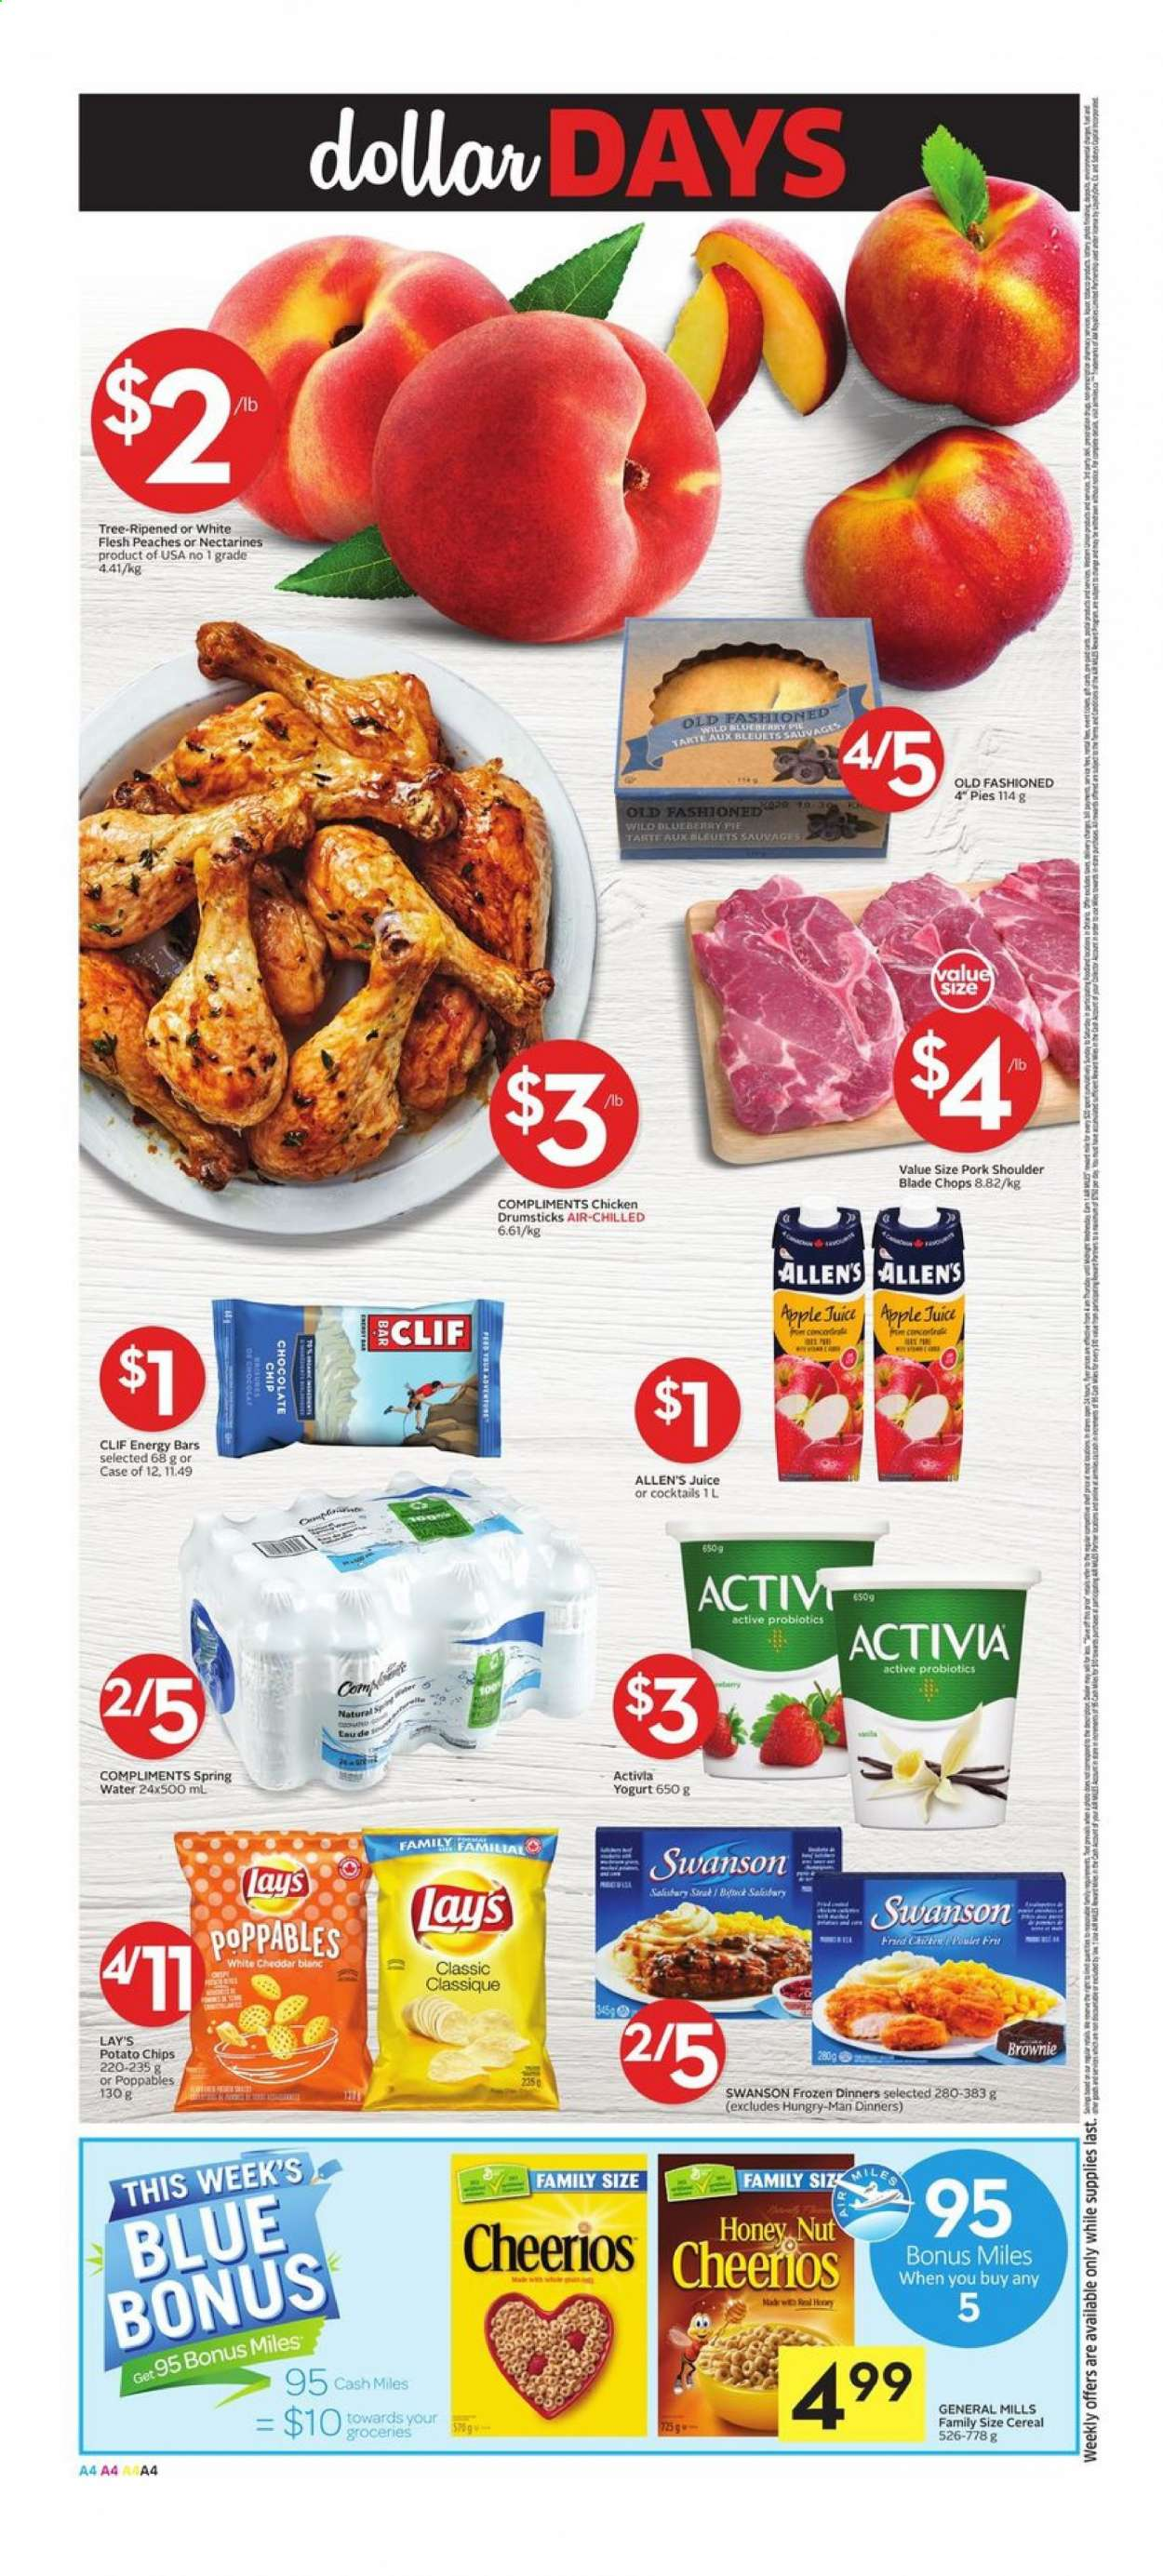 Foodland Flyer - July 16, 2020 - July 22, 2020 - Sales products - apple juice, cereals, fa, nectarines, spring water, tree, yogurt, honey, pork meat, pork shoulder, potato chips, probiotics, cheddar, cheerios, chicken, chicken drumsticks, peaches, chips, chocolate, juice, pie, cereal, lay's, tarte. Page 4.